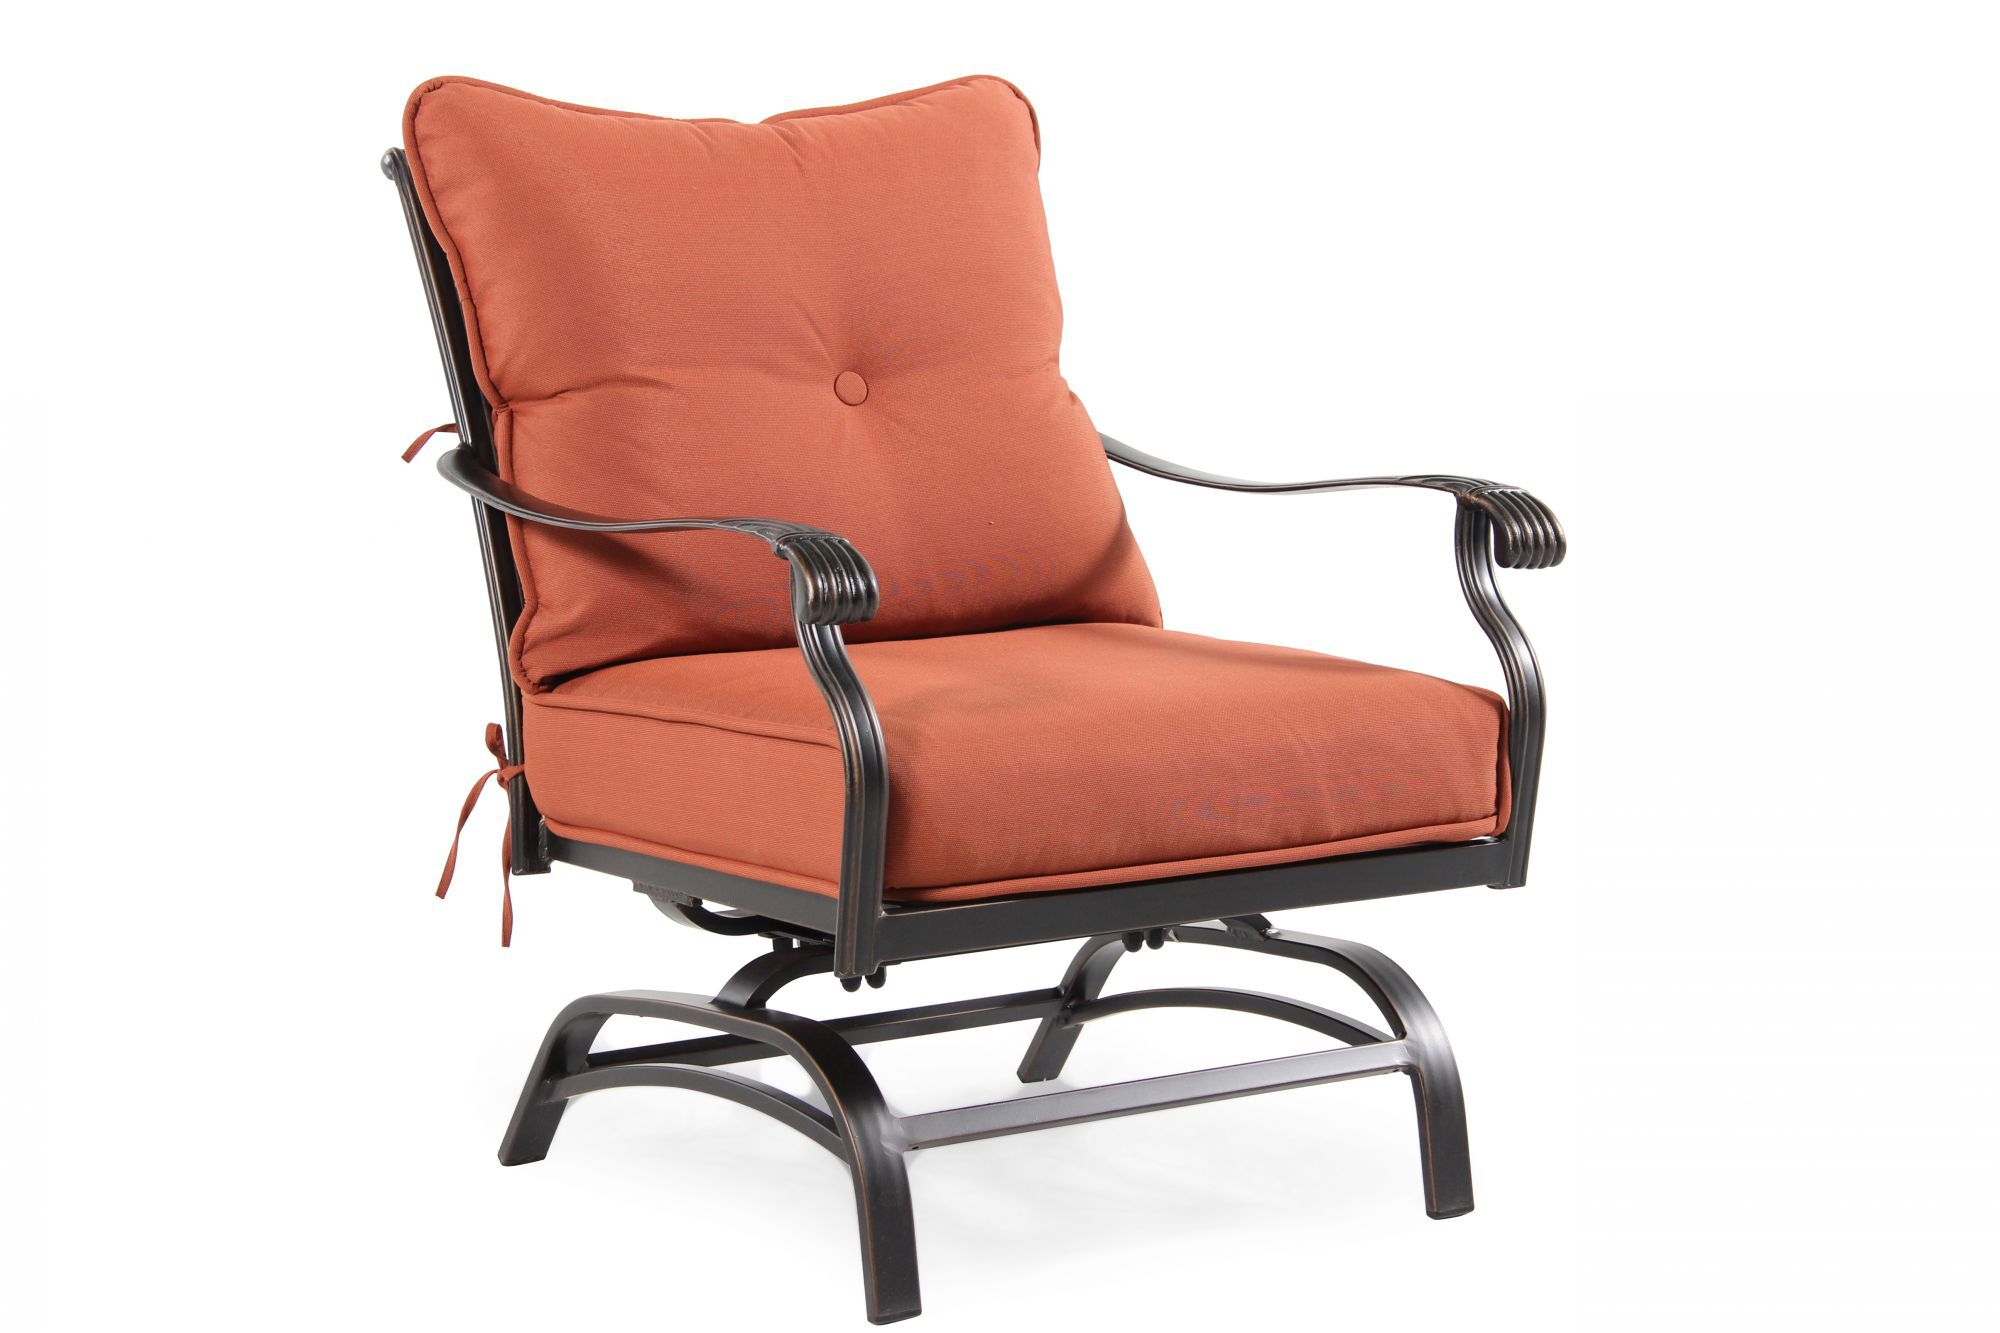 c spring patio chairs saddle chair with back support world source athens motion mathis brothers furniture